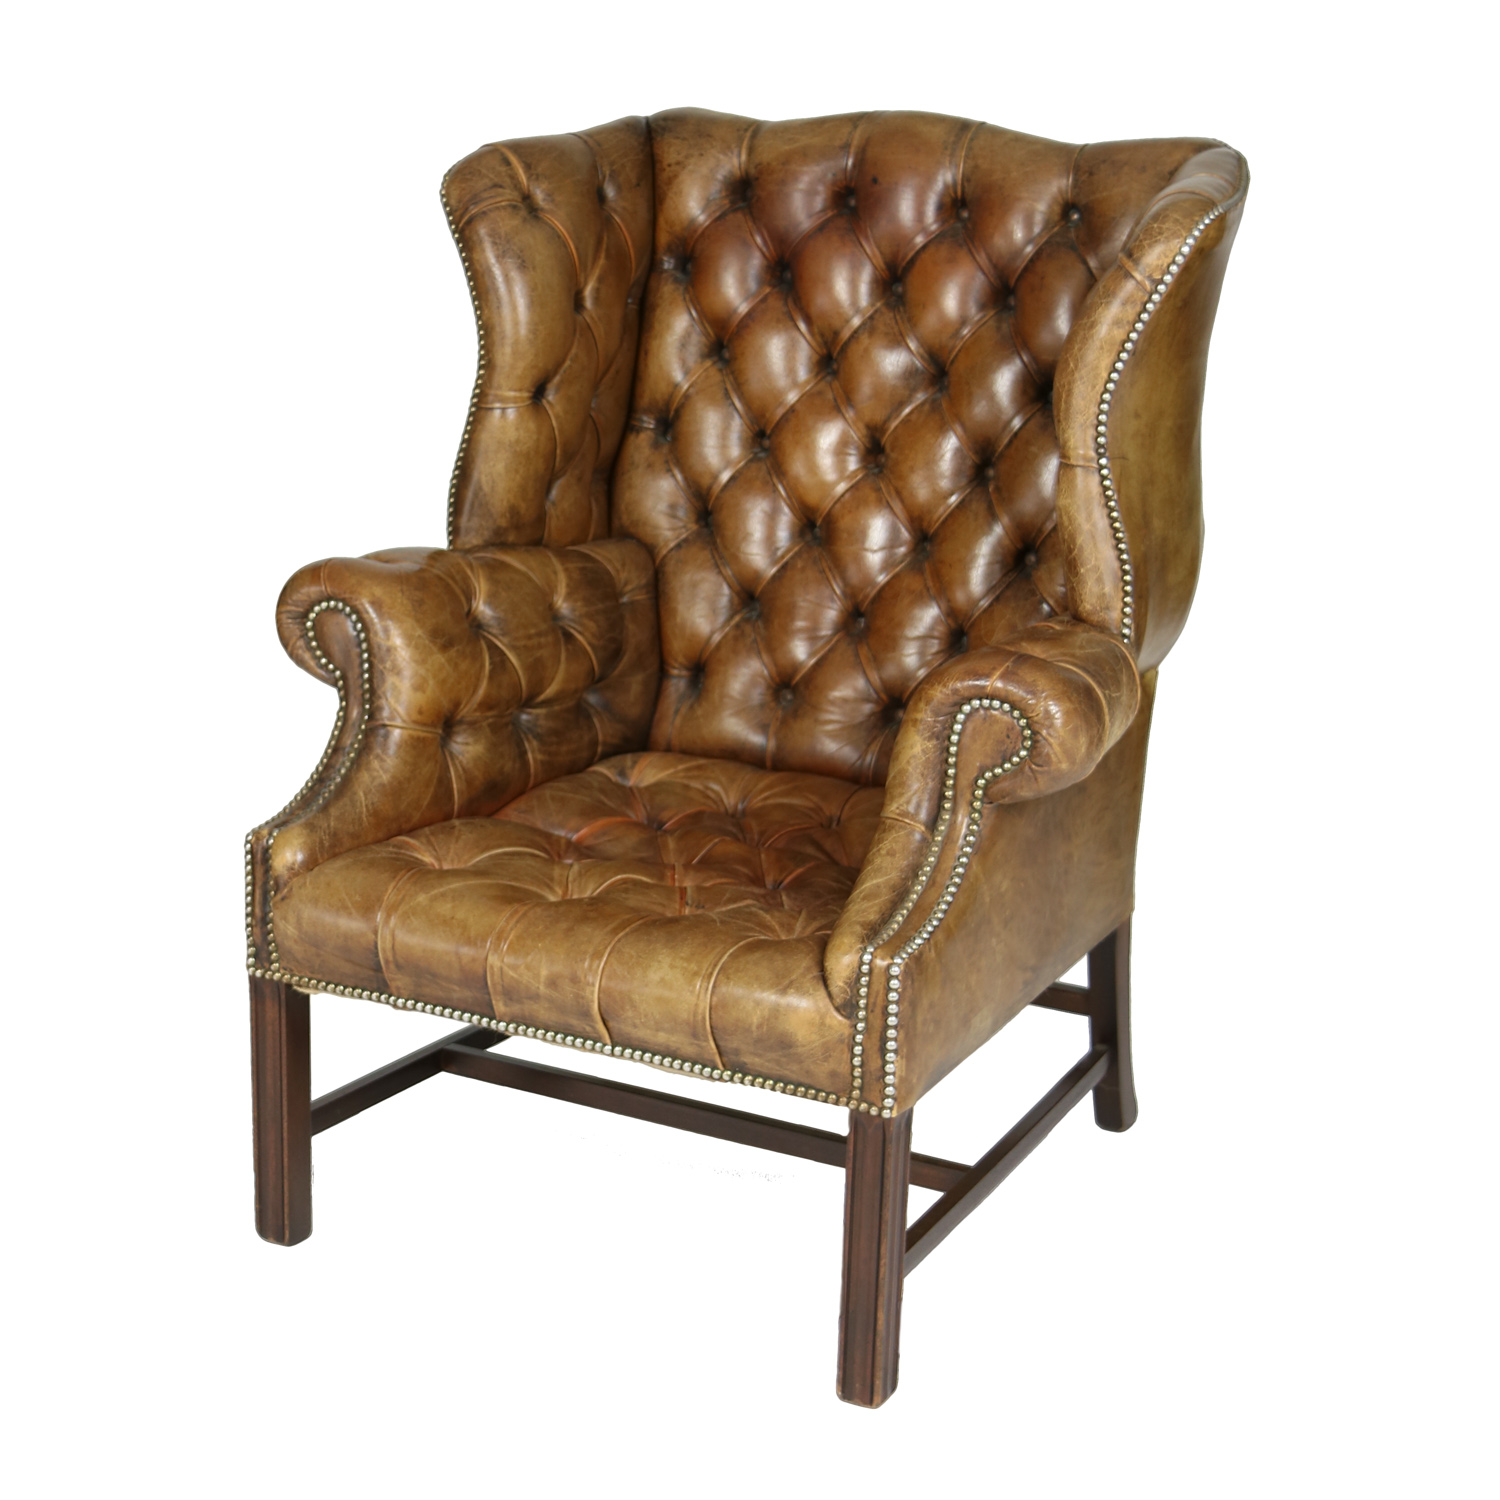 Astonishing An Elegant Brown Tufted Leather And Mahogany Wing Chair With Tight Seat English Circa 1860 Cjindustries Chair Design For Home Cjindustriesco